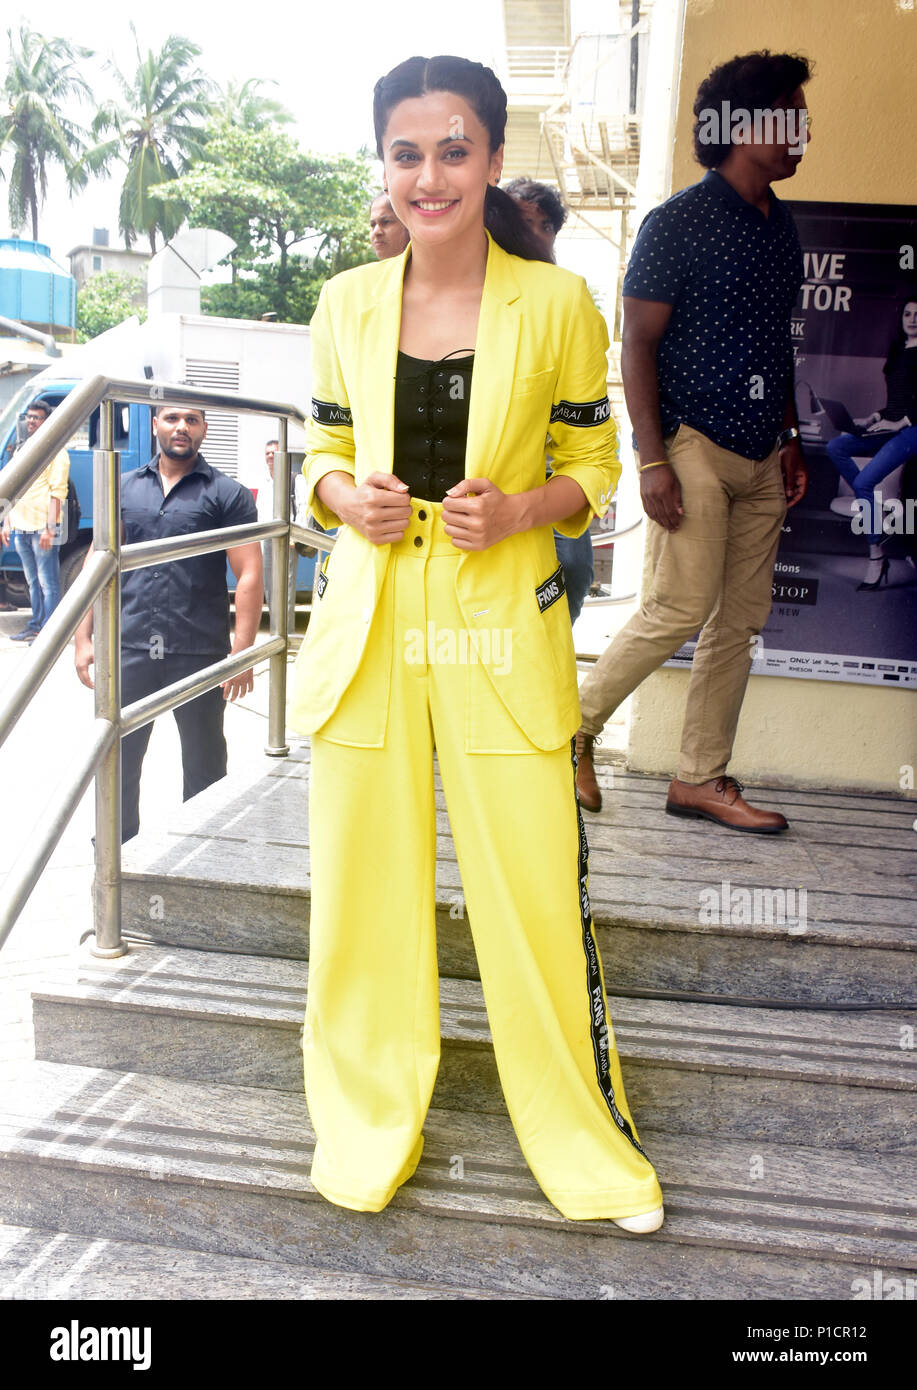 Indian film actress Tapsee Panuu pose during trailer launch of her upcoming film Soorma, the film Biopic of Hockey player Sandeep Singh in Mumbai. - Stock Image